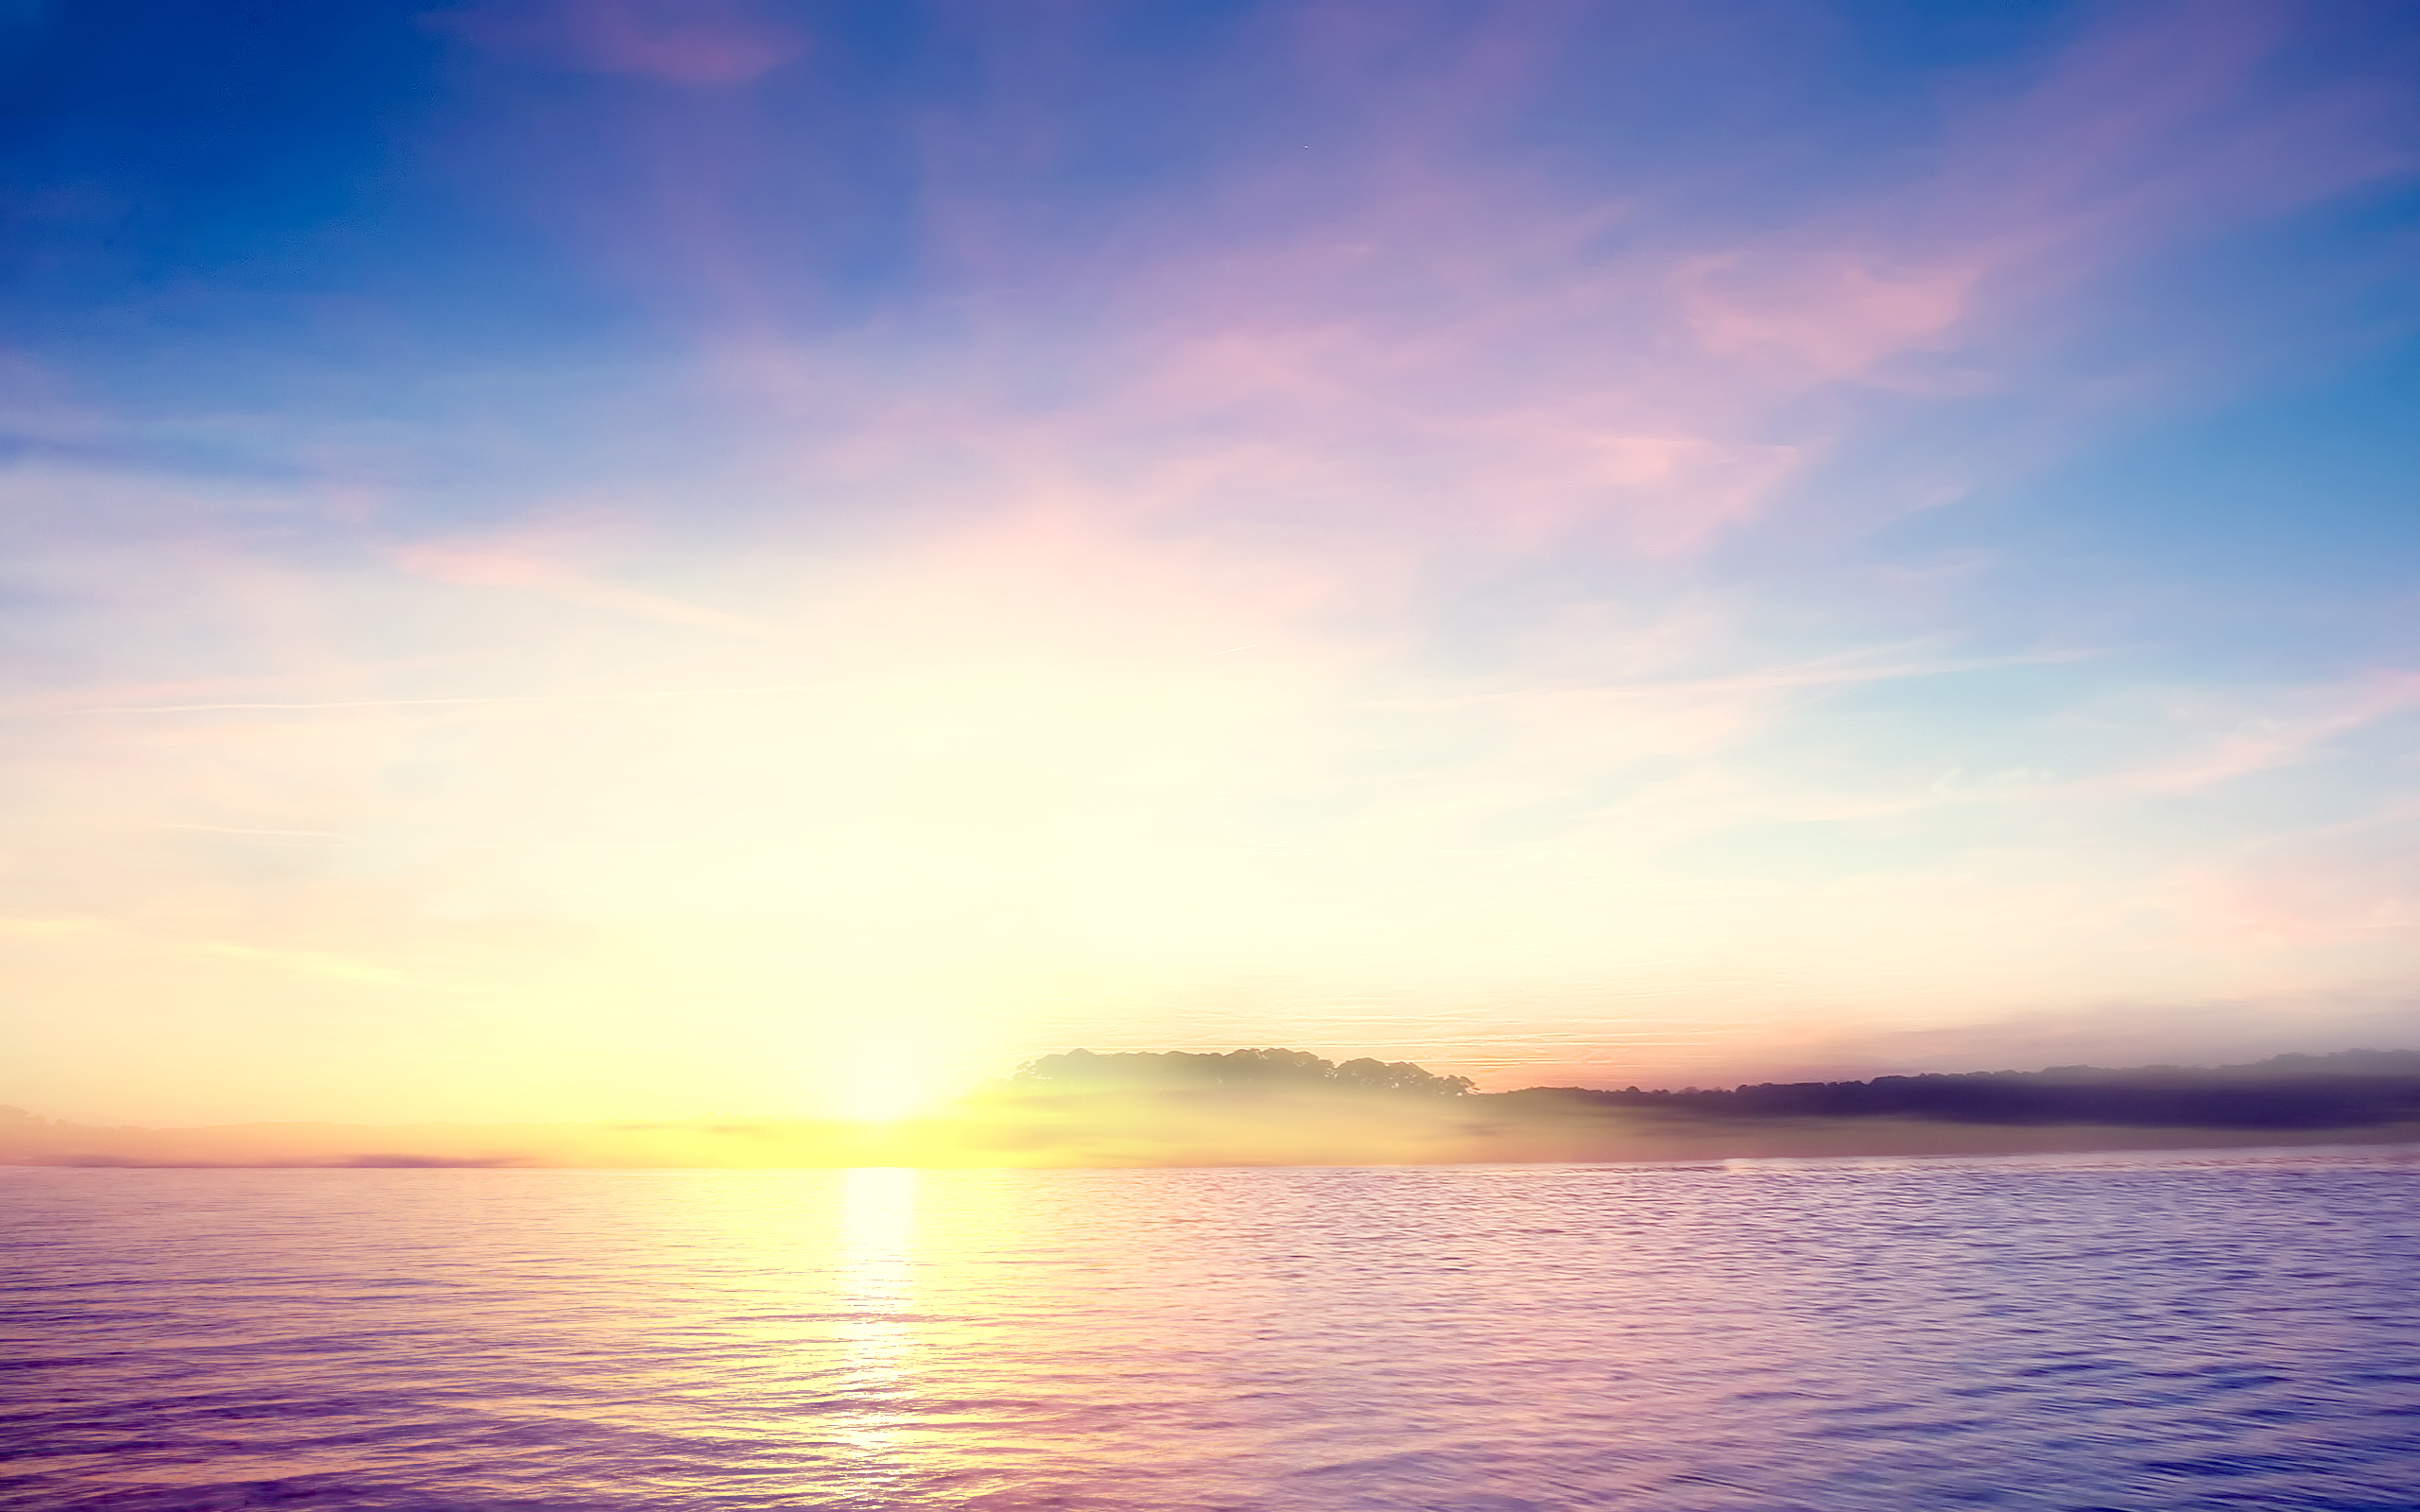 Tropical Island Sunset Wallpapers HD Wallpapers 2560x1600